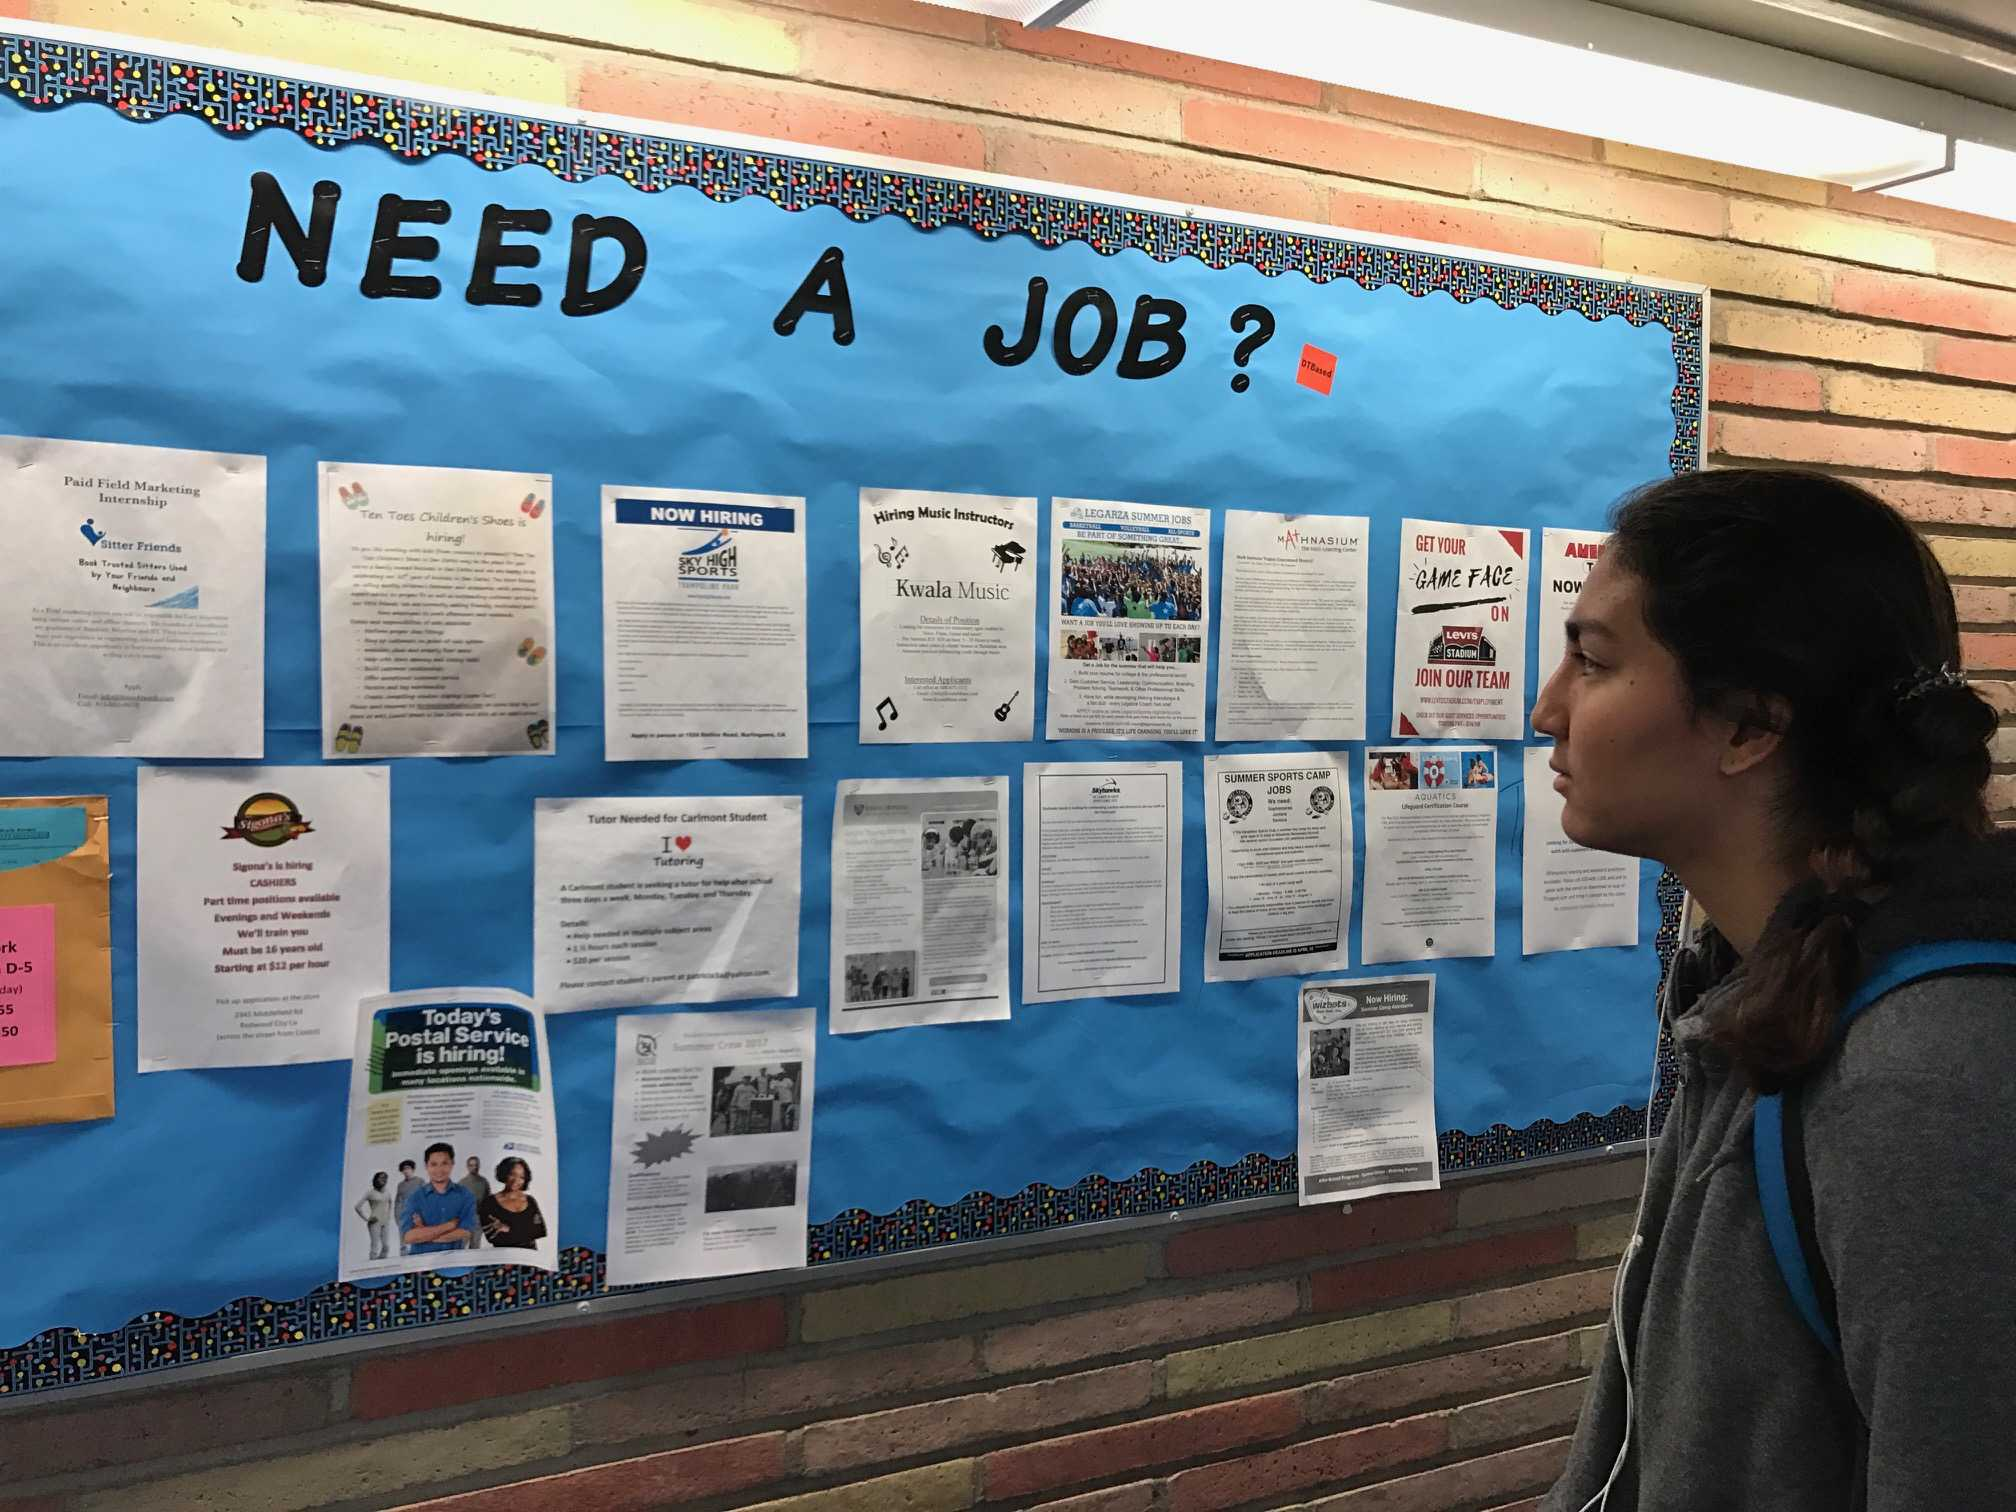 Sophomore Seema Wadhwa looks at the B-hall bulletin board before class. Wadhwa hopes to find an interesting job opportunity.